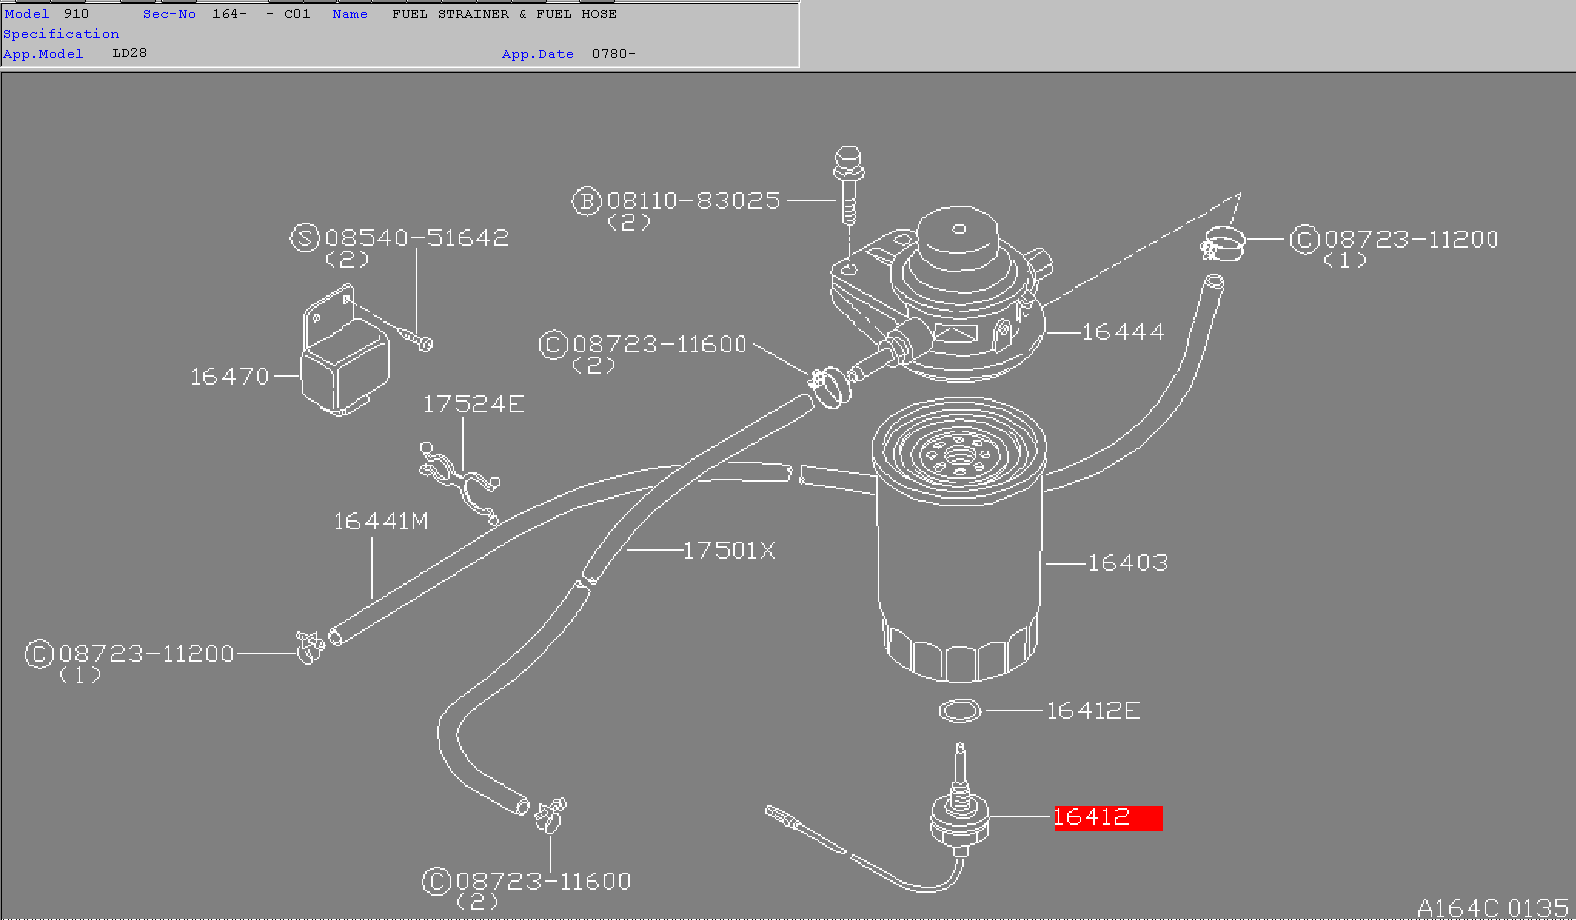 Nissandiesel Forums View Topic Ld28 Maxima Fuel Filter Engine Cooling System Diagram On 93 Nissan Truck Fast Actually Lists Three Water In Wif Sensor Probes